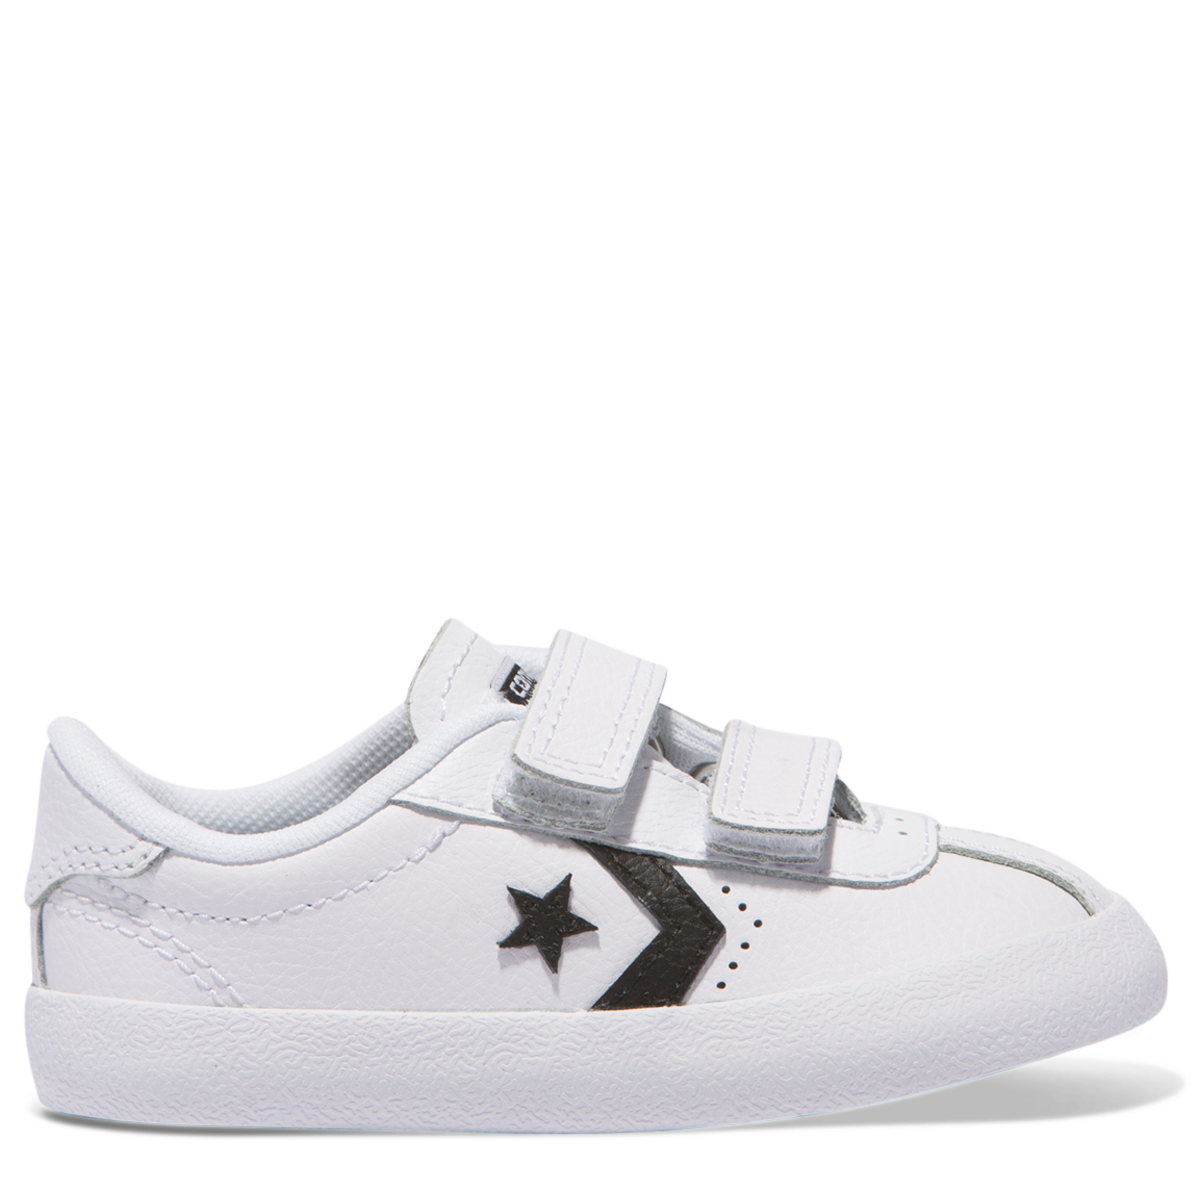 a9751307101fbf Converse Breakpoint 2V Leather Toddler Low Top White 758202C ...